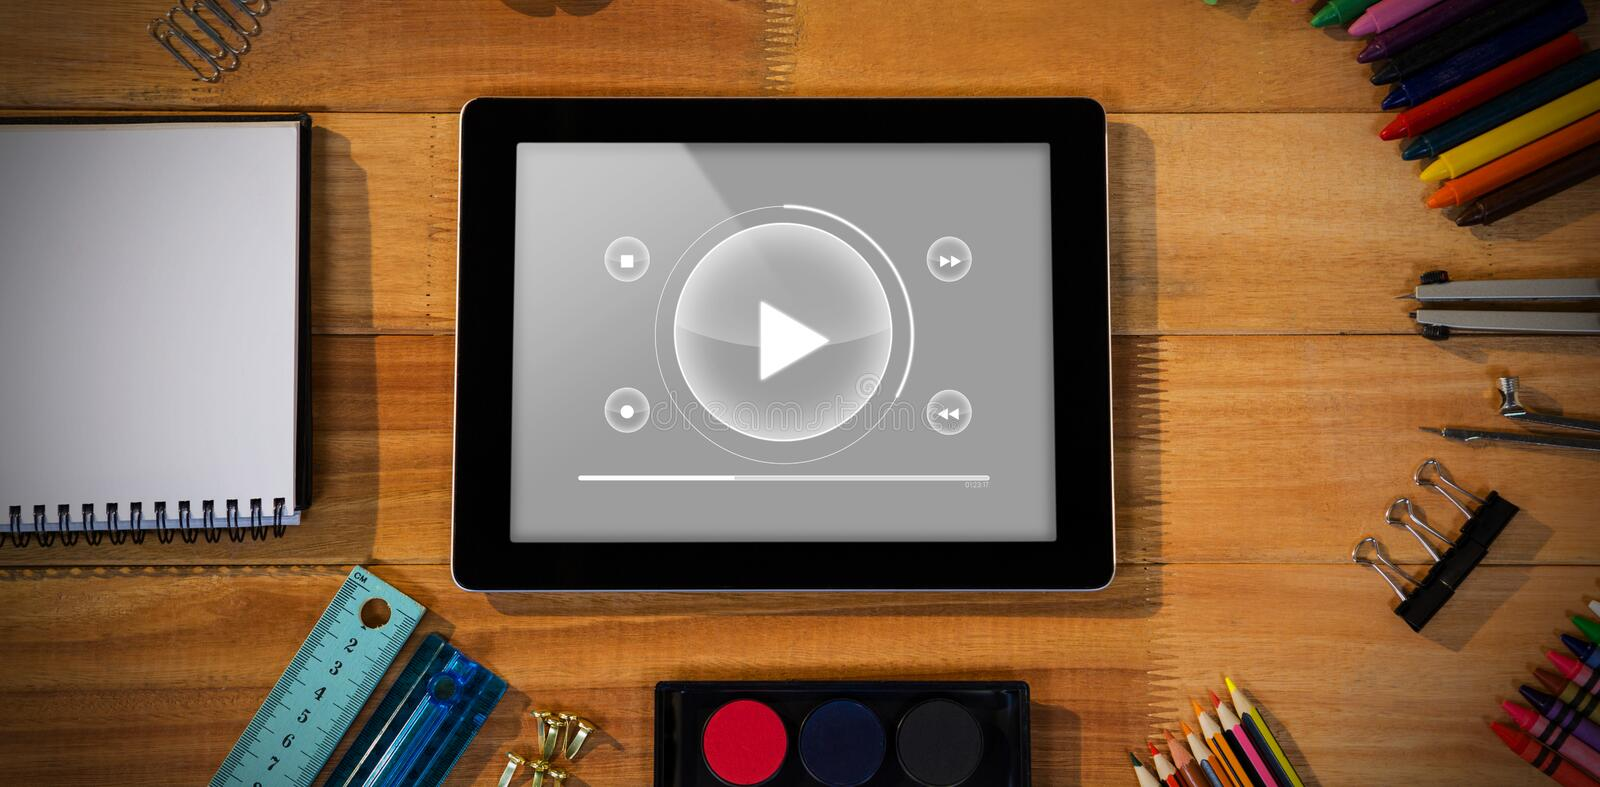 Composite image of music player interface. Music player interface against digital tablet with various stationery stock photography